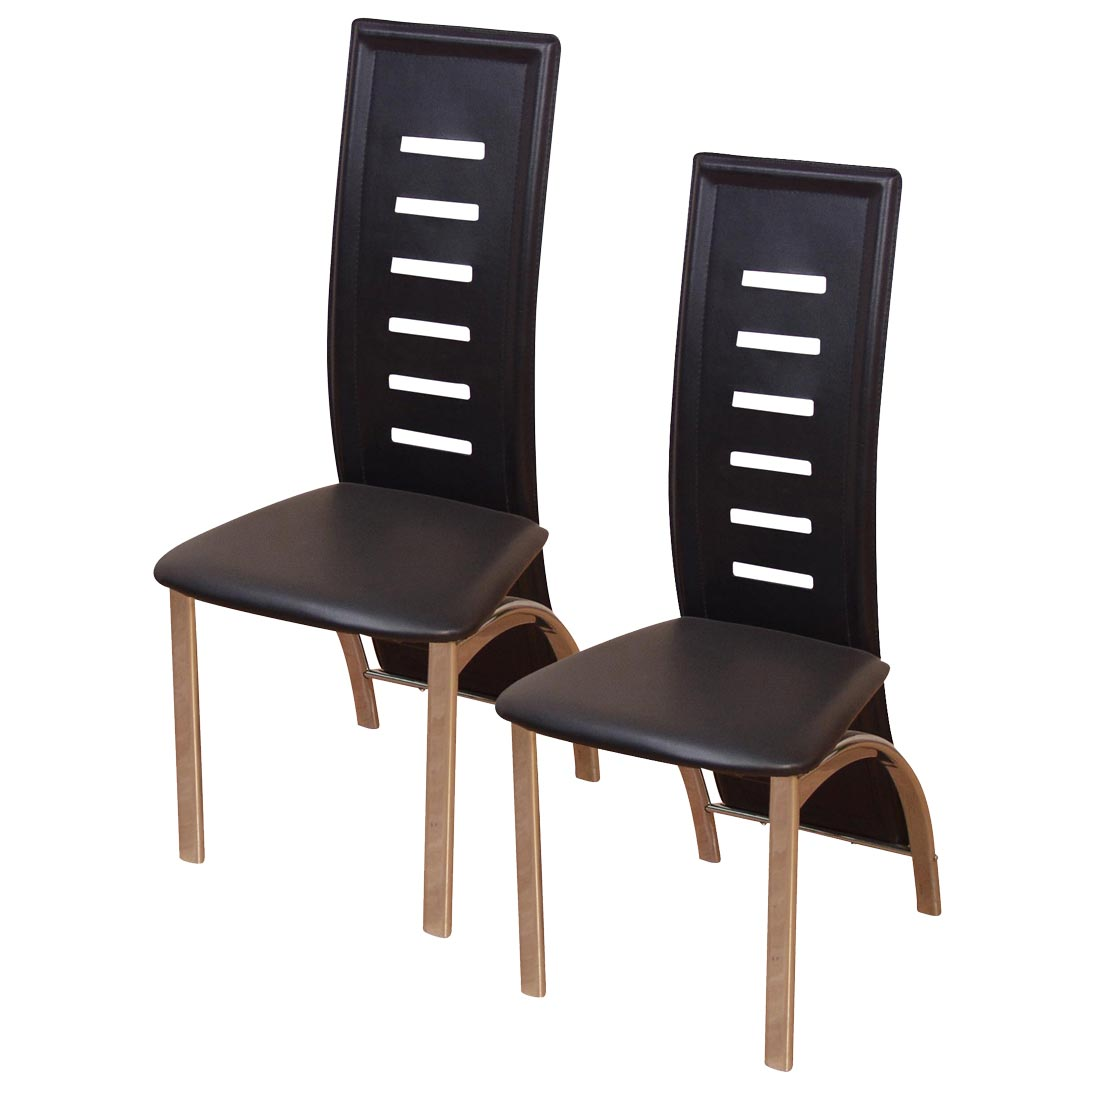 2x esszimmerstuhl h126 stuhl lehnstuhl kunstleder schwarz. Black Bedroom Furniture Sets. Home Design Ideas